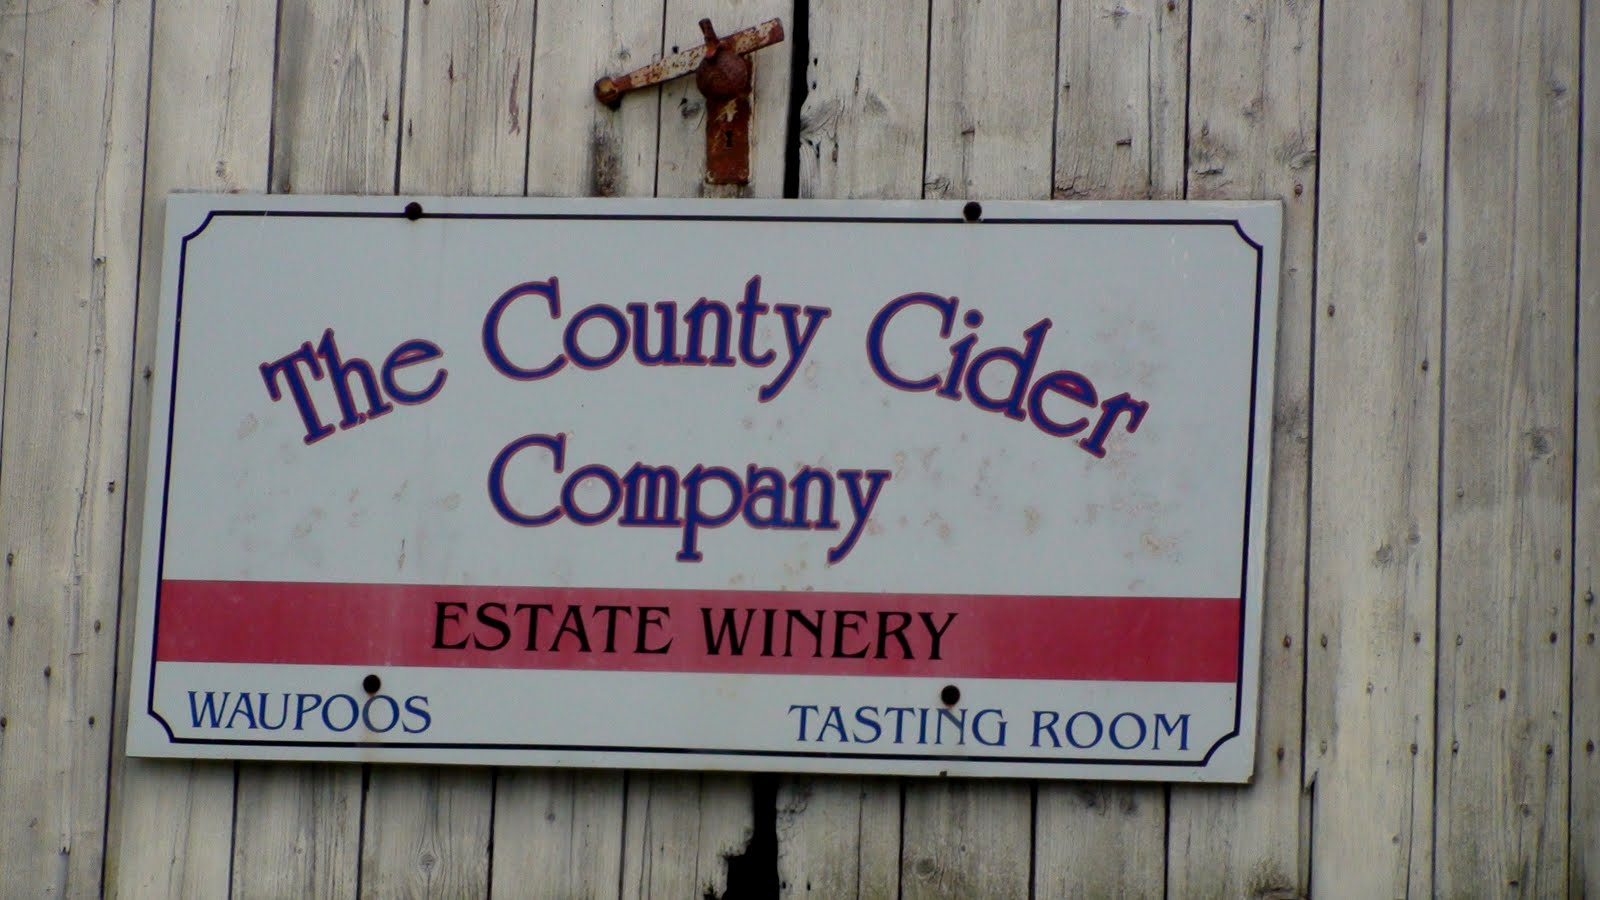 The County Cider Company sign